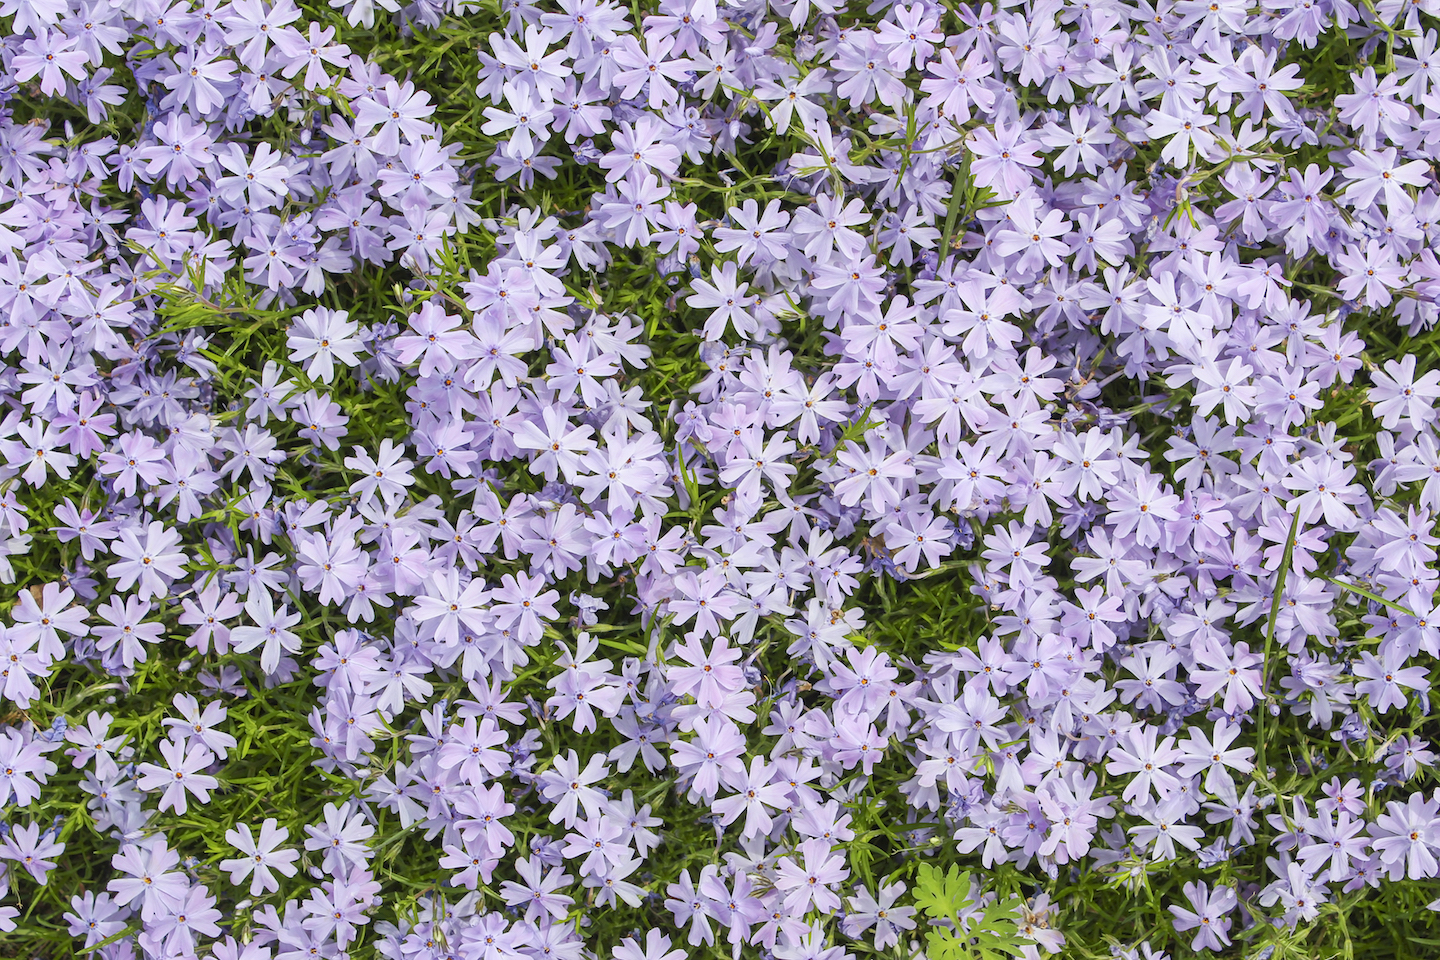 Natural carpet of ornamental flowering moss phlox as background